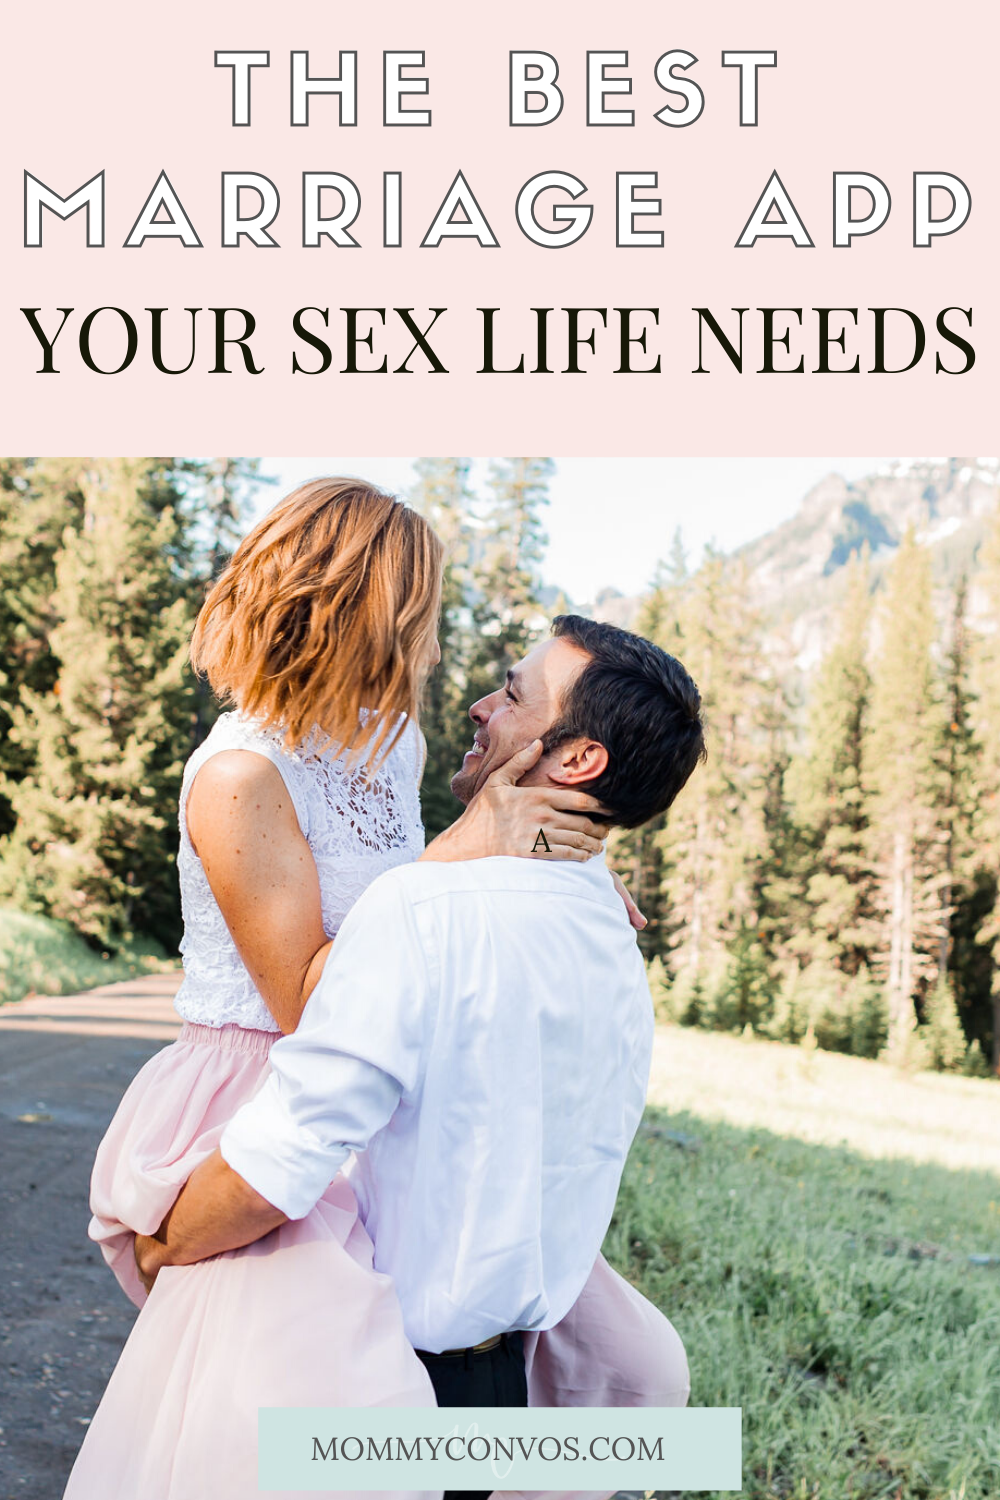 The best marriage app your sex life needs, how to sext your spouse, best marriage advice, best marriage apps, healthy sex life for couples, marriage 101, healthy sex, marriage app, how to have a healthy marriage